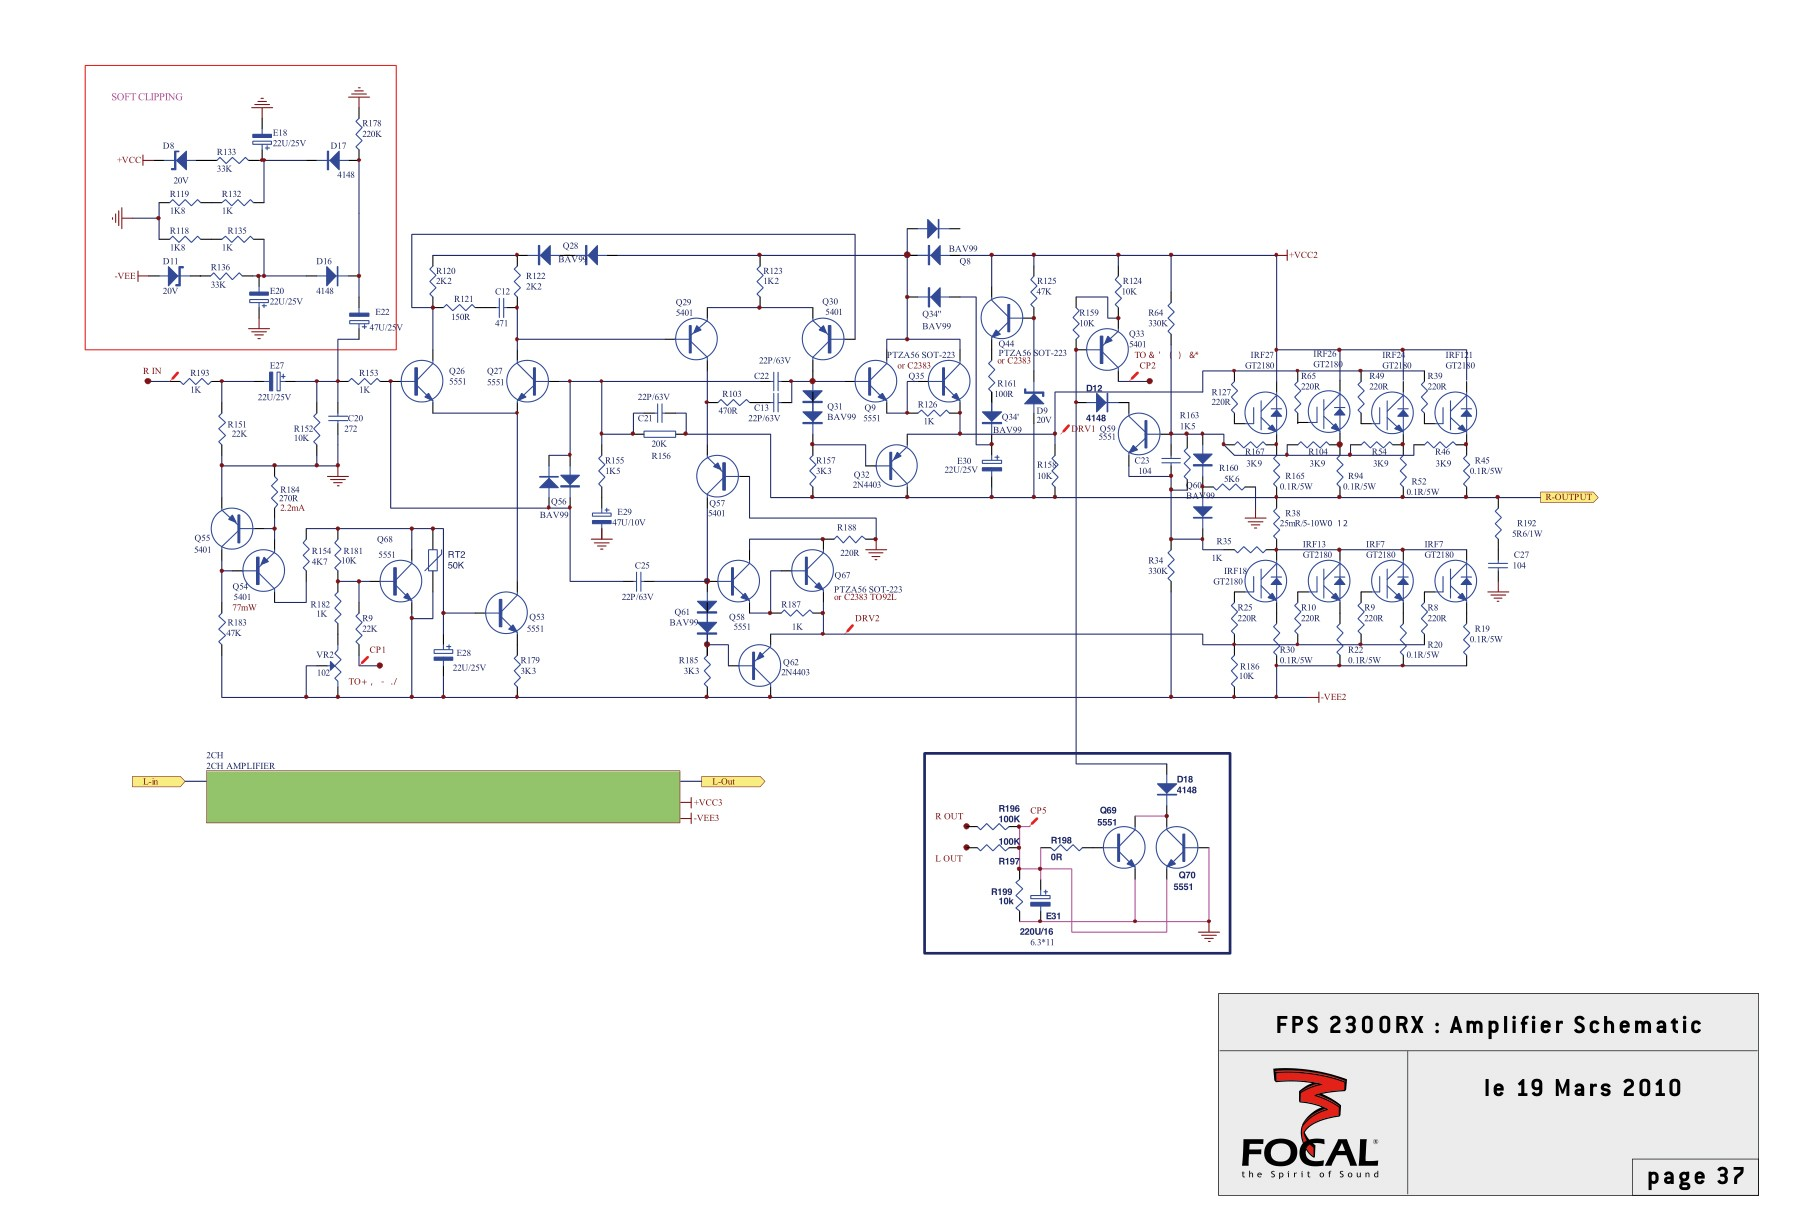 FPS 2300RX Amplifier Schematic